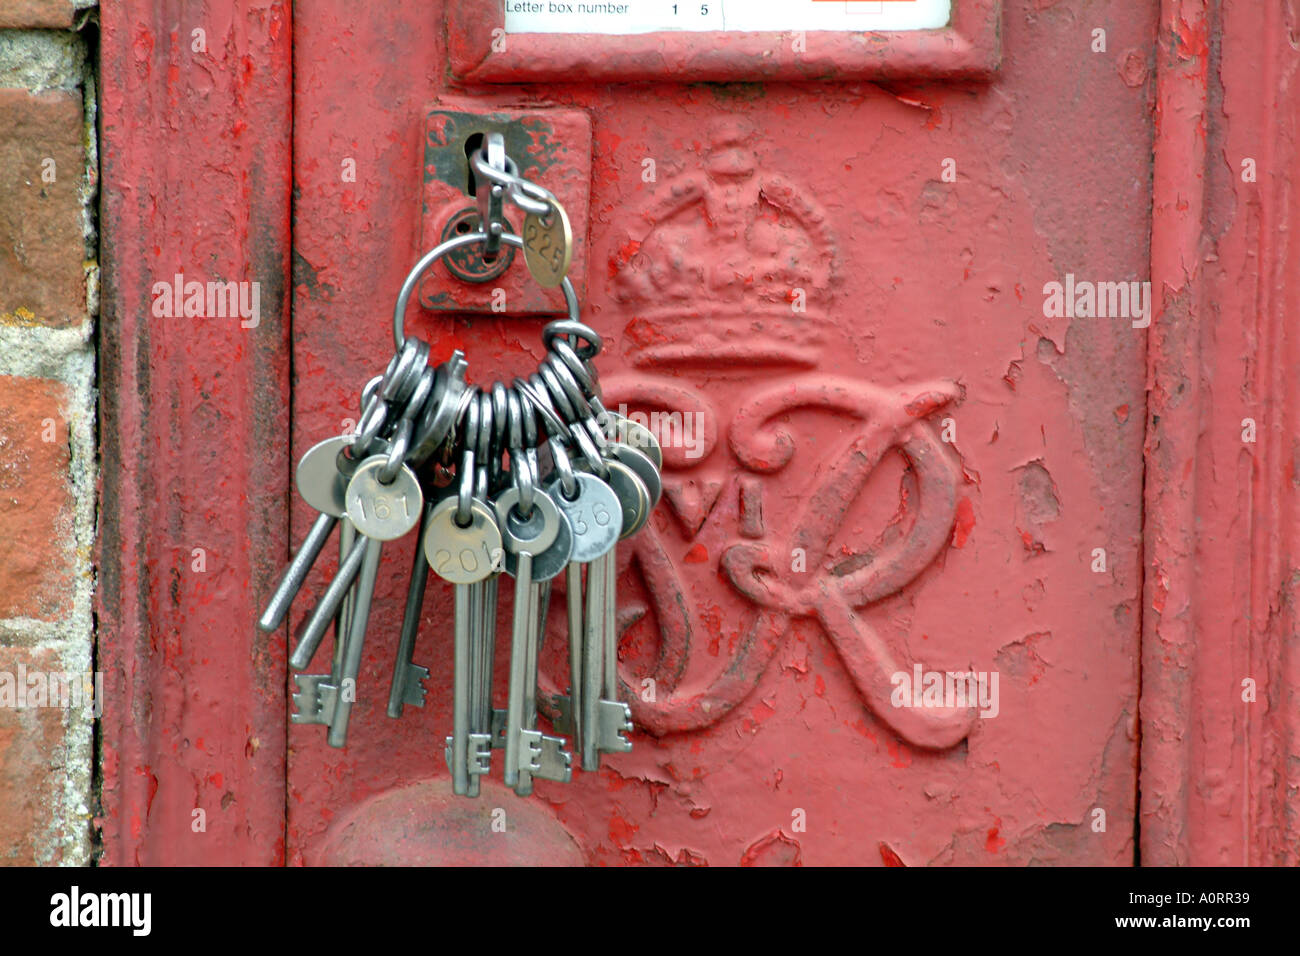 red english royal mail letter box with keys in lock open close